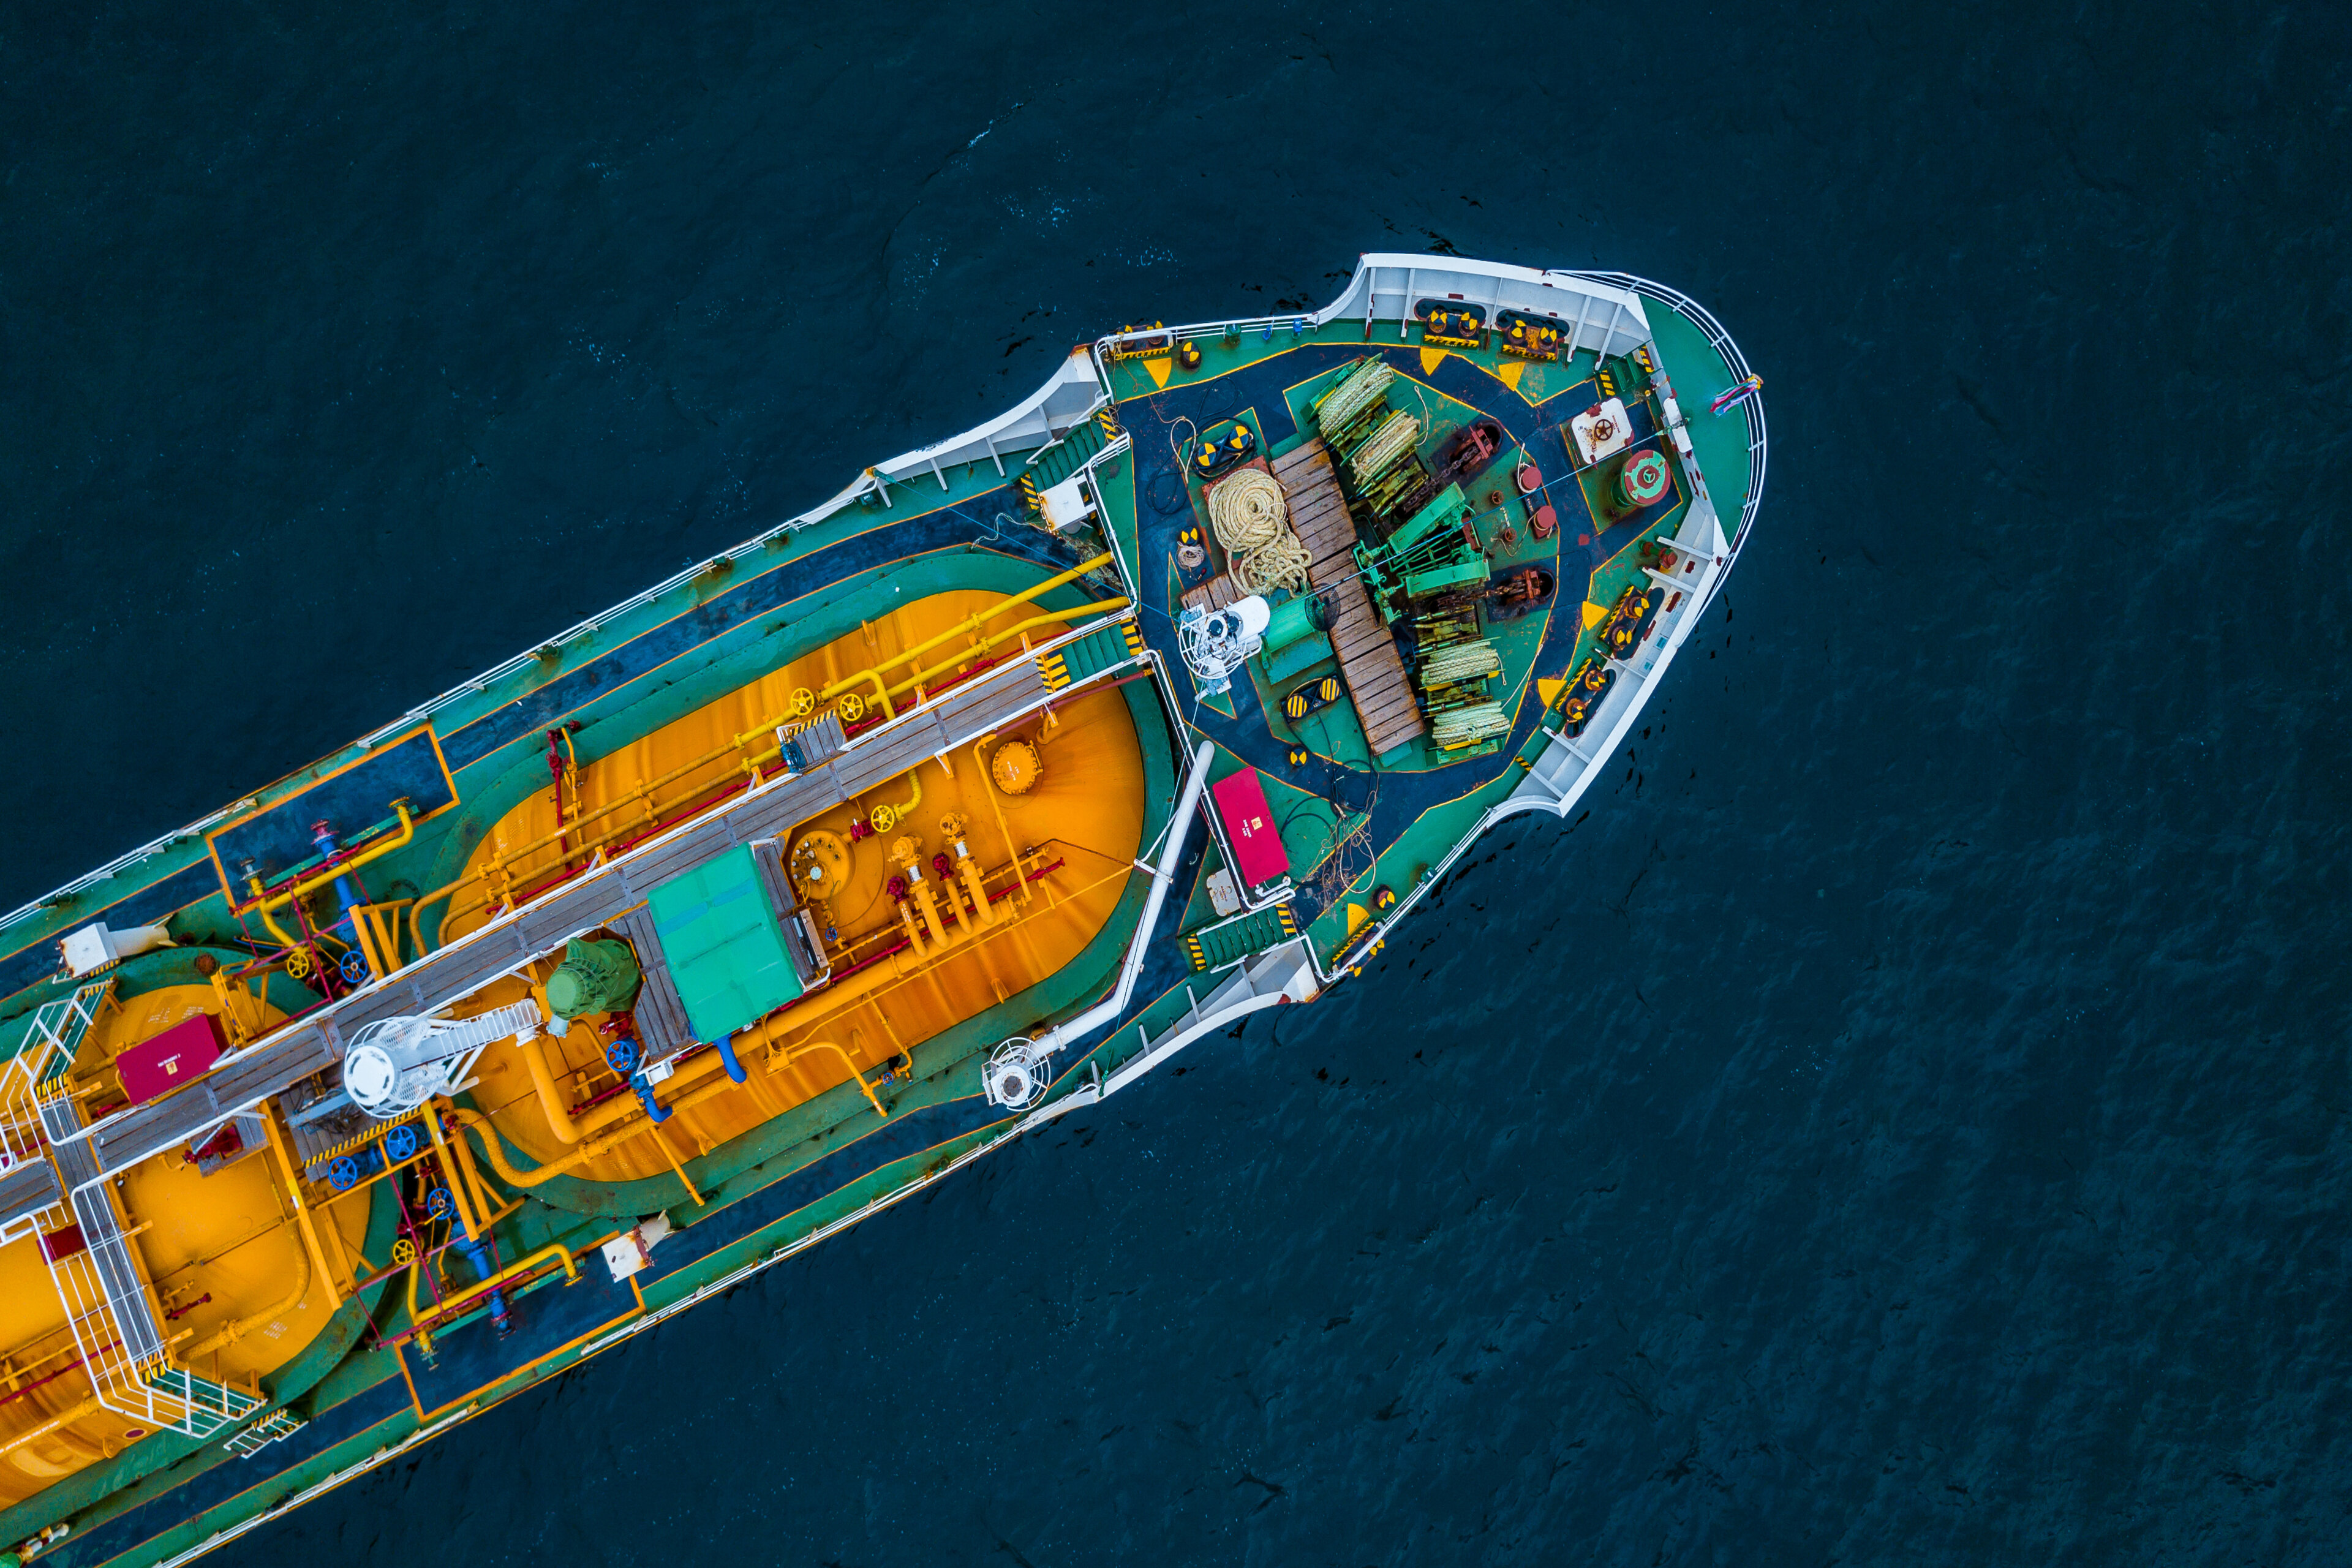 Tanker ship logistic and transportation at sea, Aerial view tanker